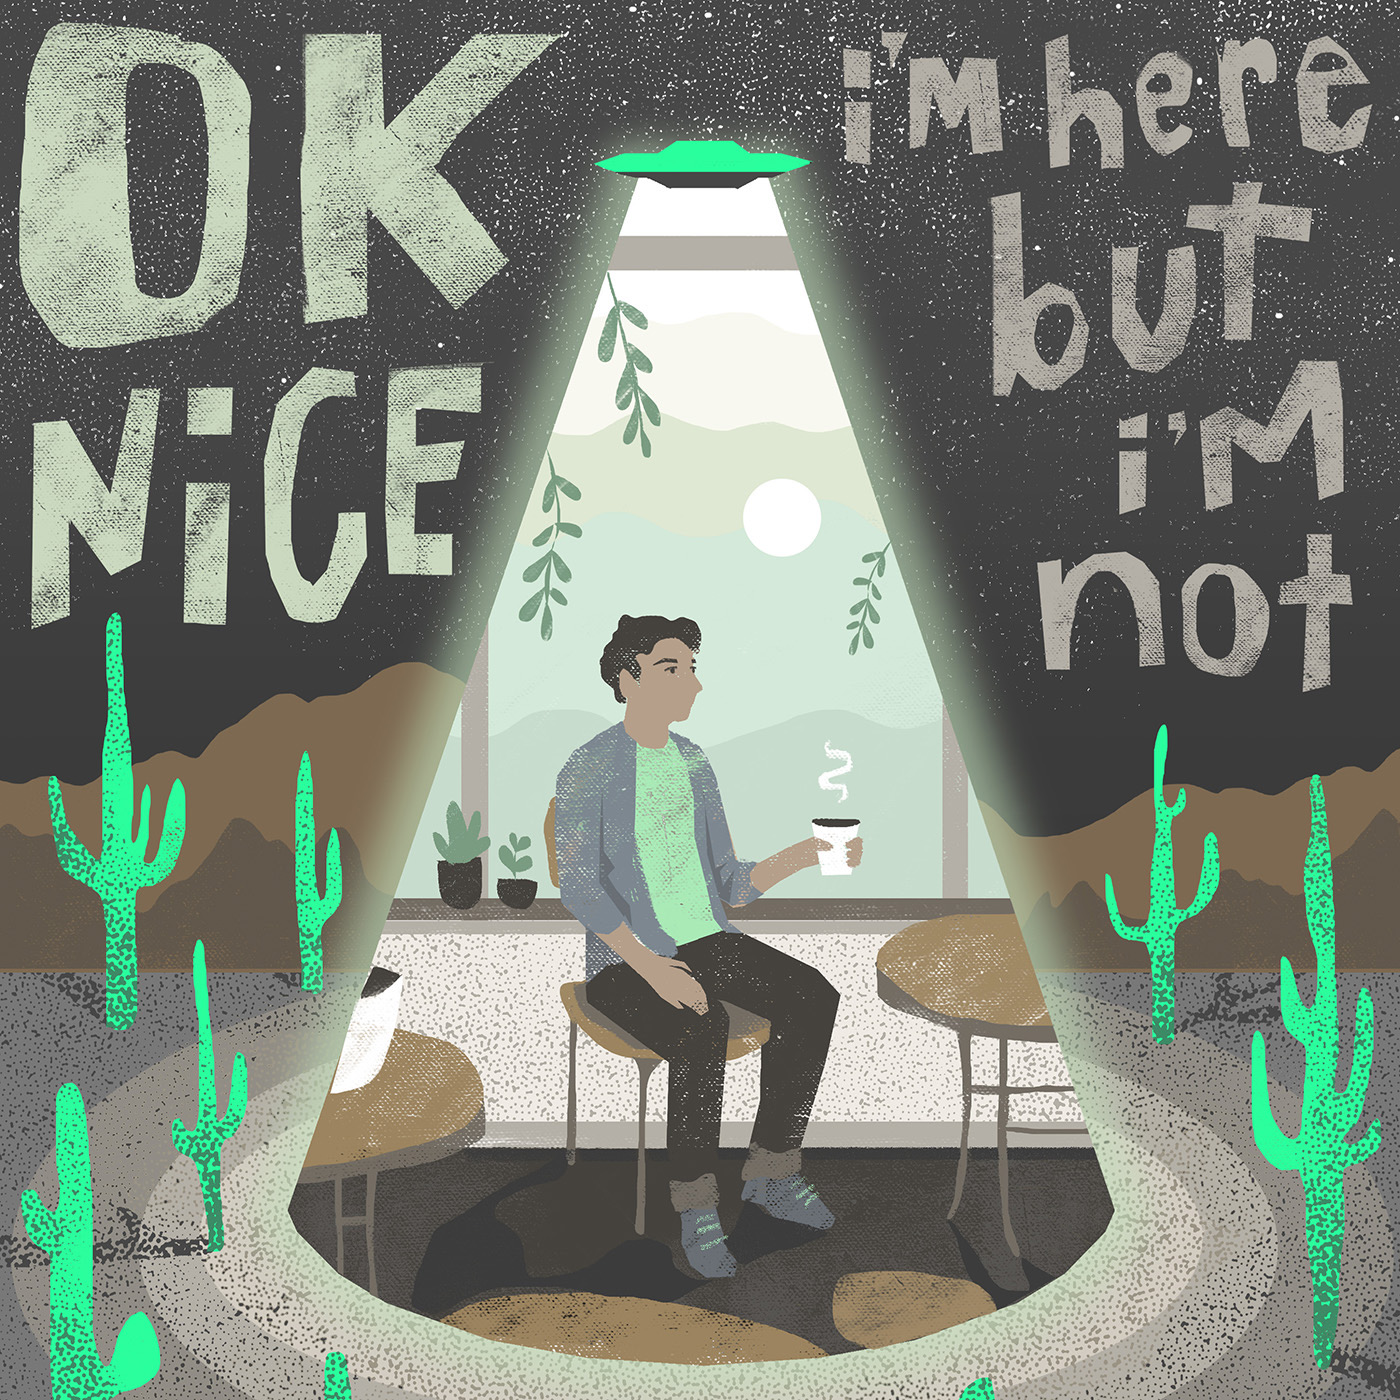 I'M HERE BUT I'M NOT - OKNICE